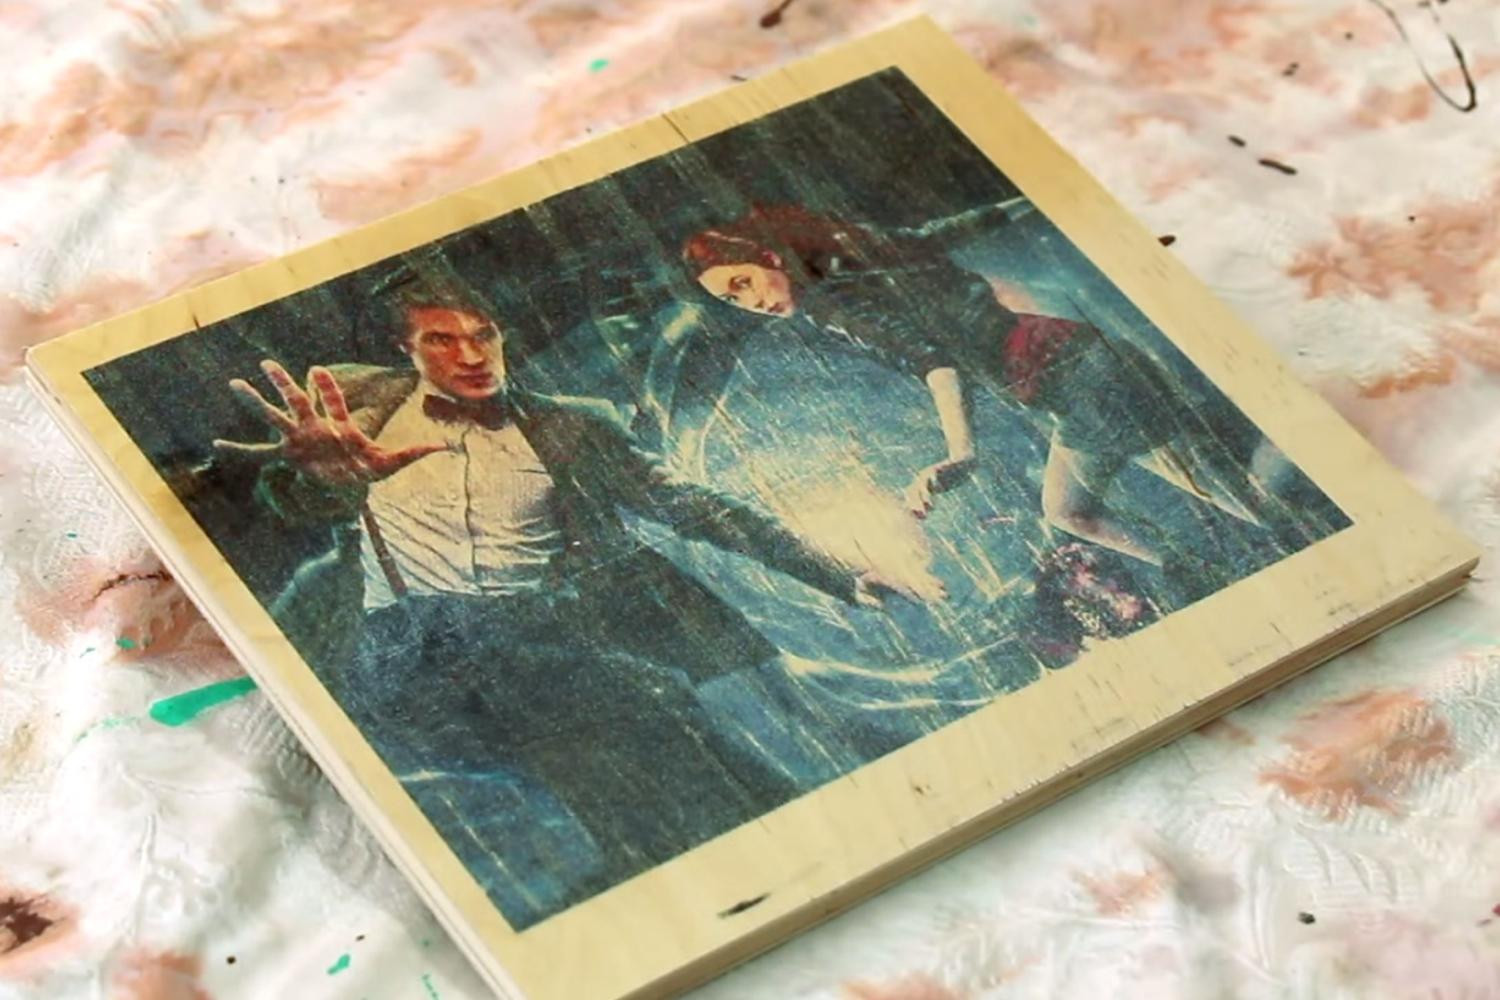 Printing On Wood DIY  DIY video shows you how to print on wood with an inkjet